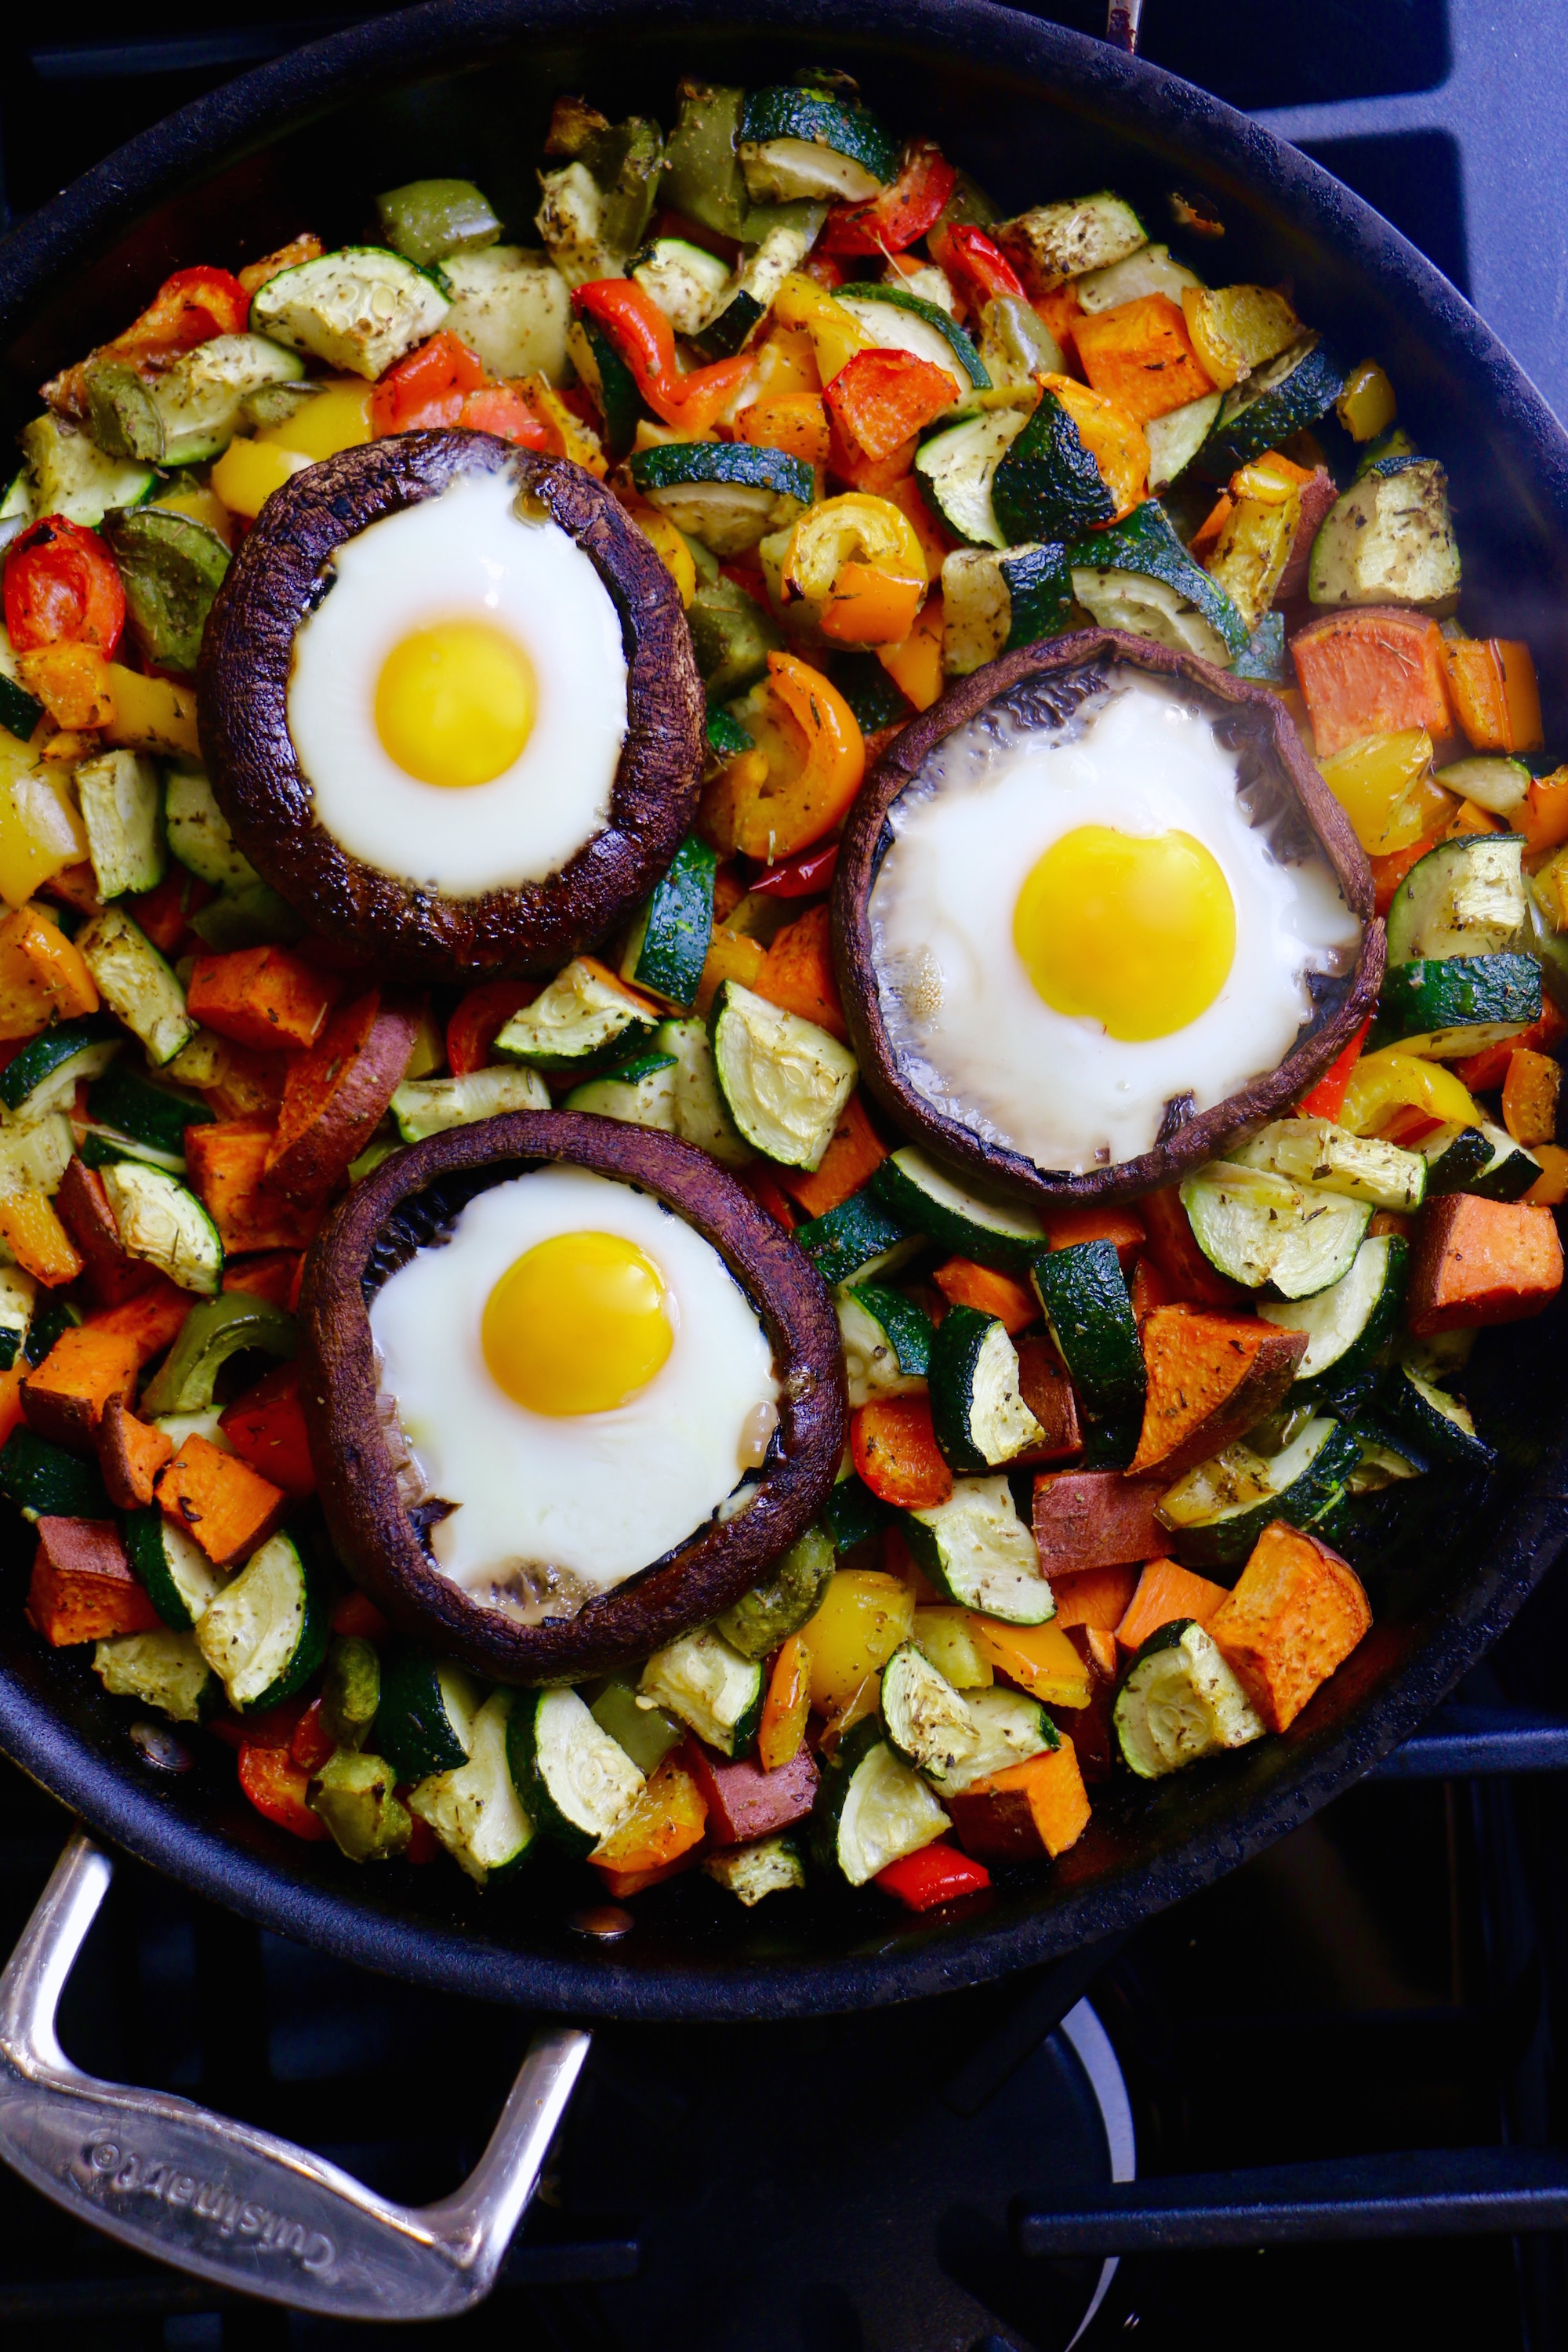 Portobello Mushroom Egg Bake with Colorful Roasted Veggies ...